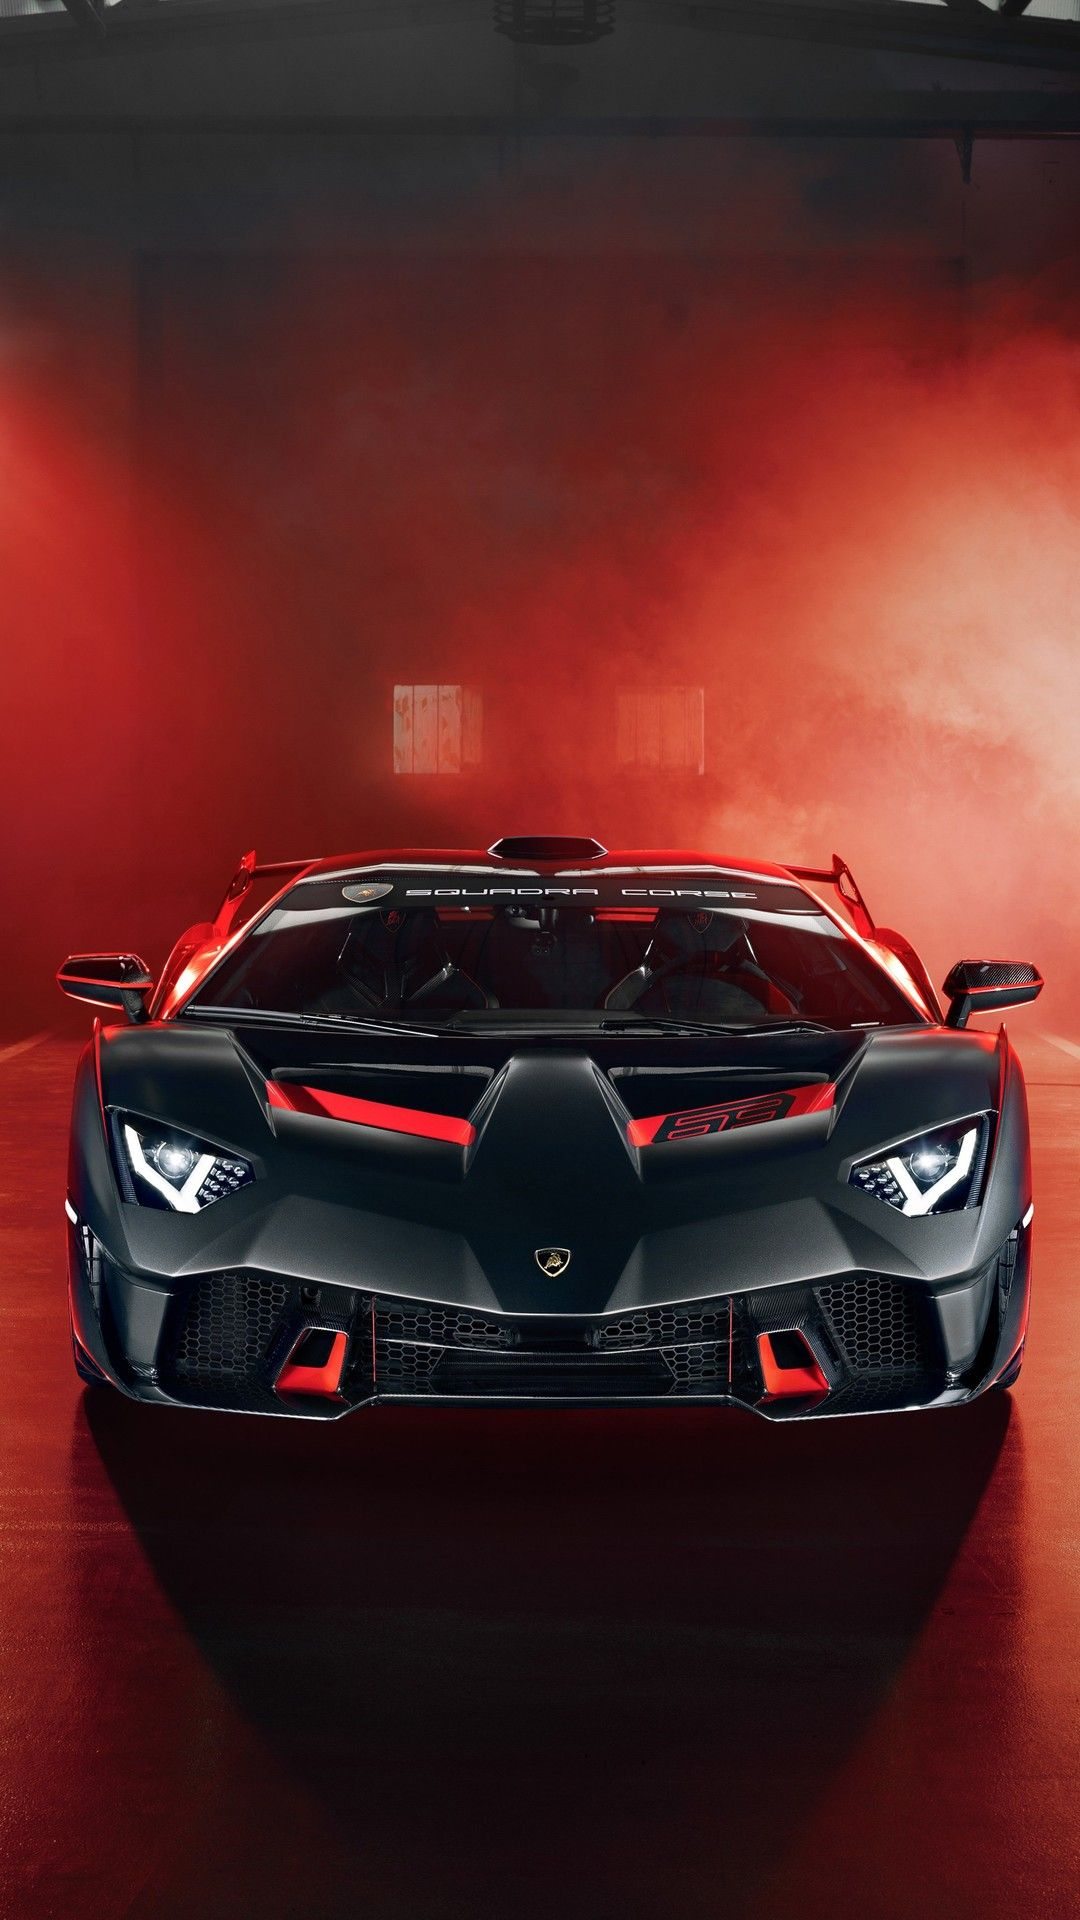 2019 Lamborghini Sc18 4k In 1080x1920 Resolution Lamborghini